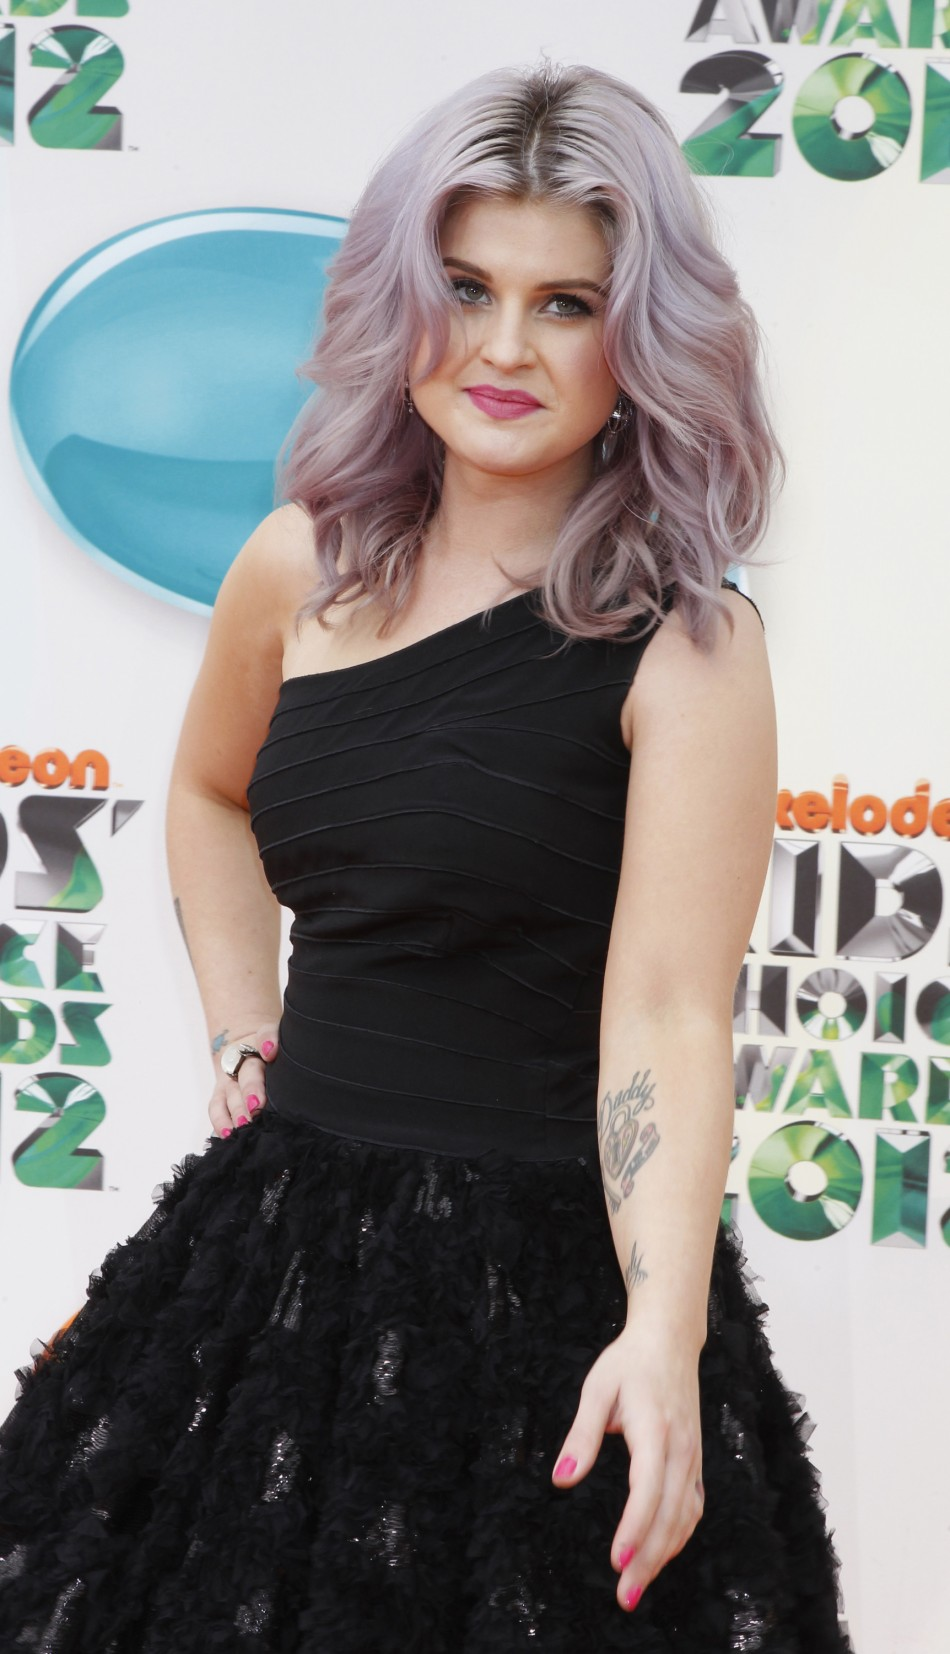 Actress Kelly Osbourne poses at Nickelodeon's 25th annual Kids' Choice Awards in Los Angeles